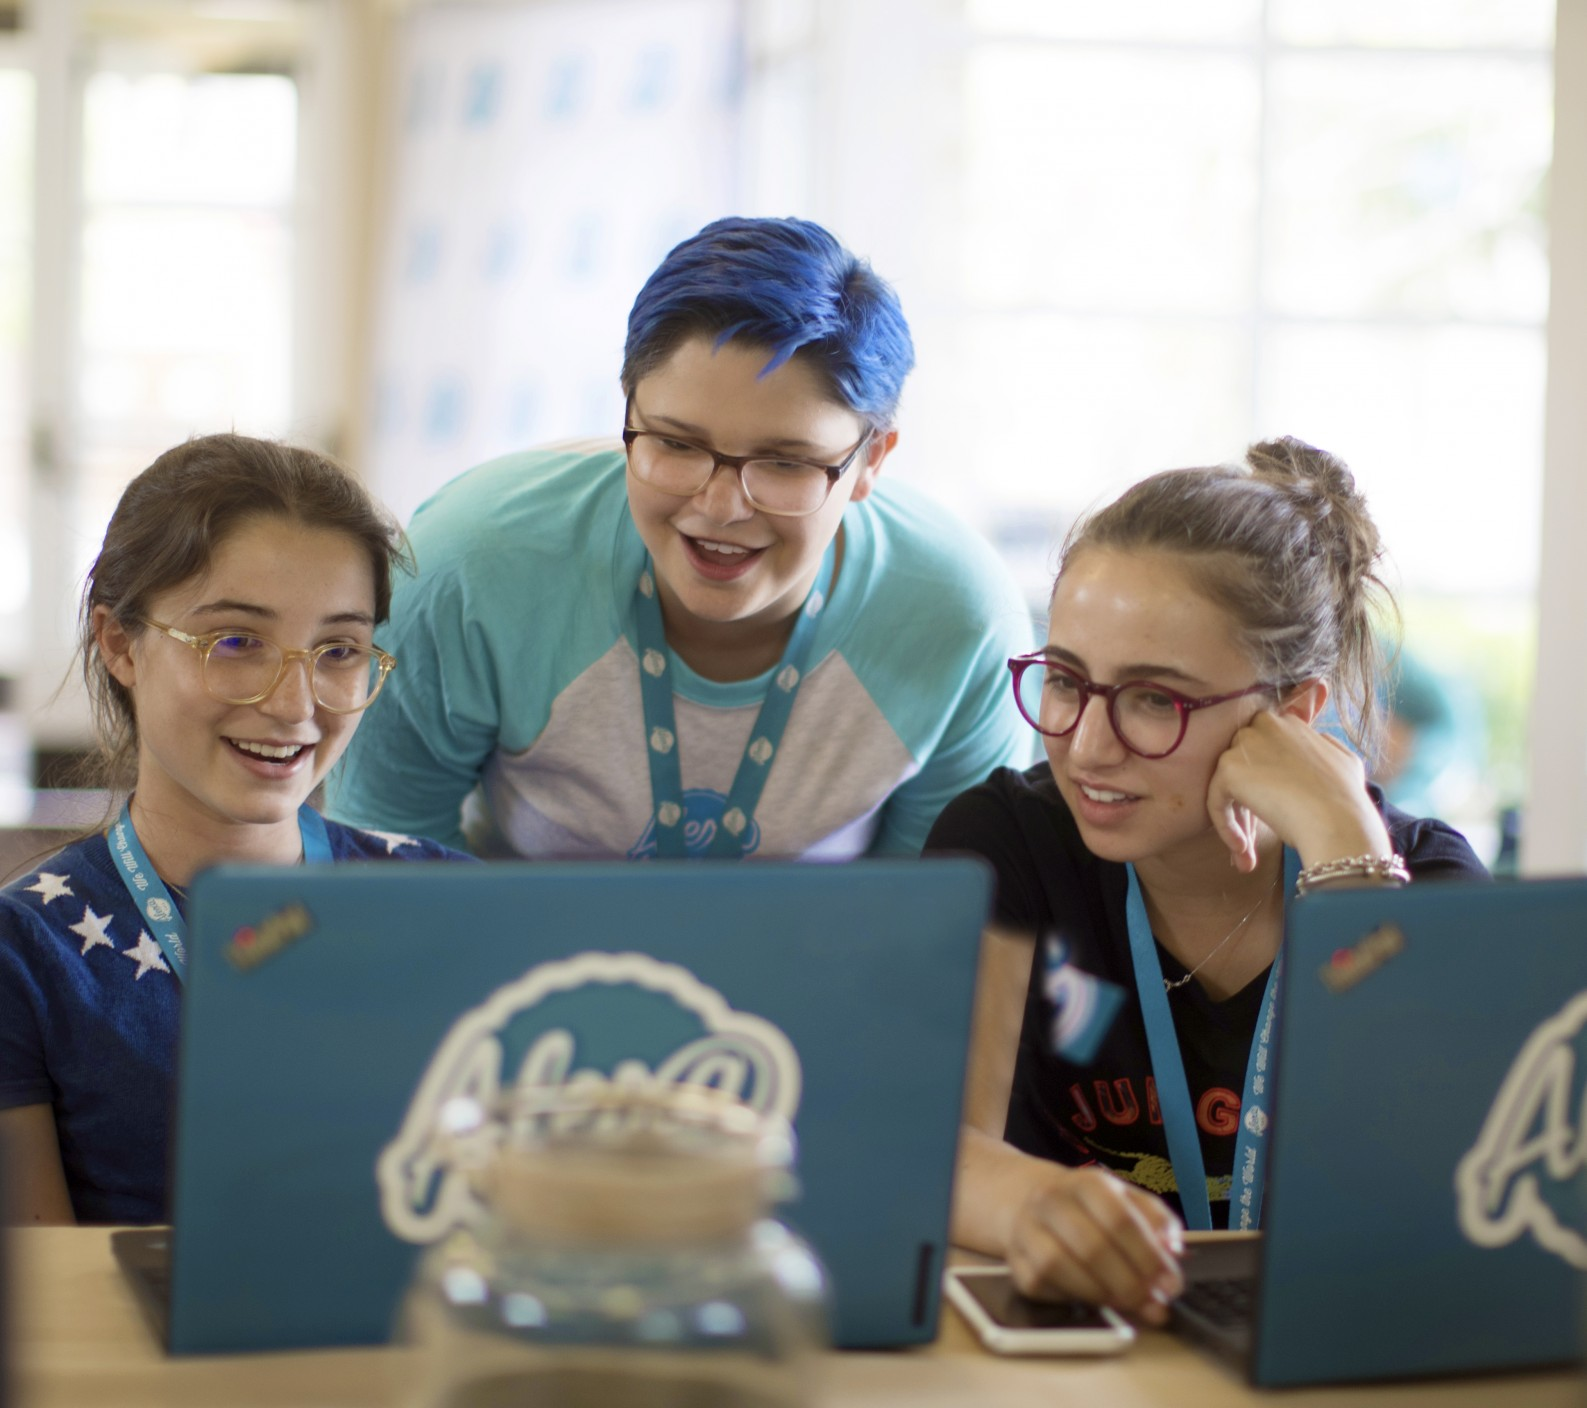 Summer Program - Electronics | Alexa Cafe: All-Girls STEM Camp | Held at UC Berkeley